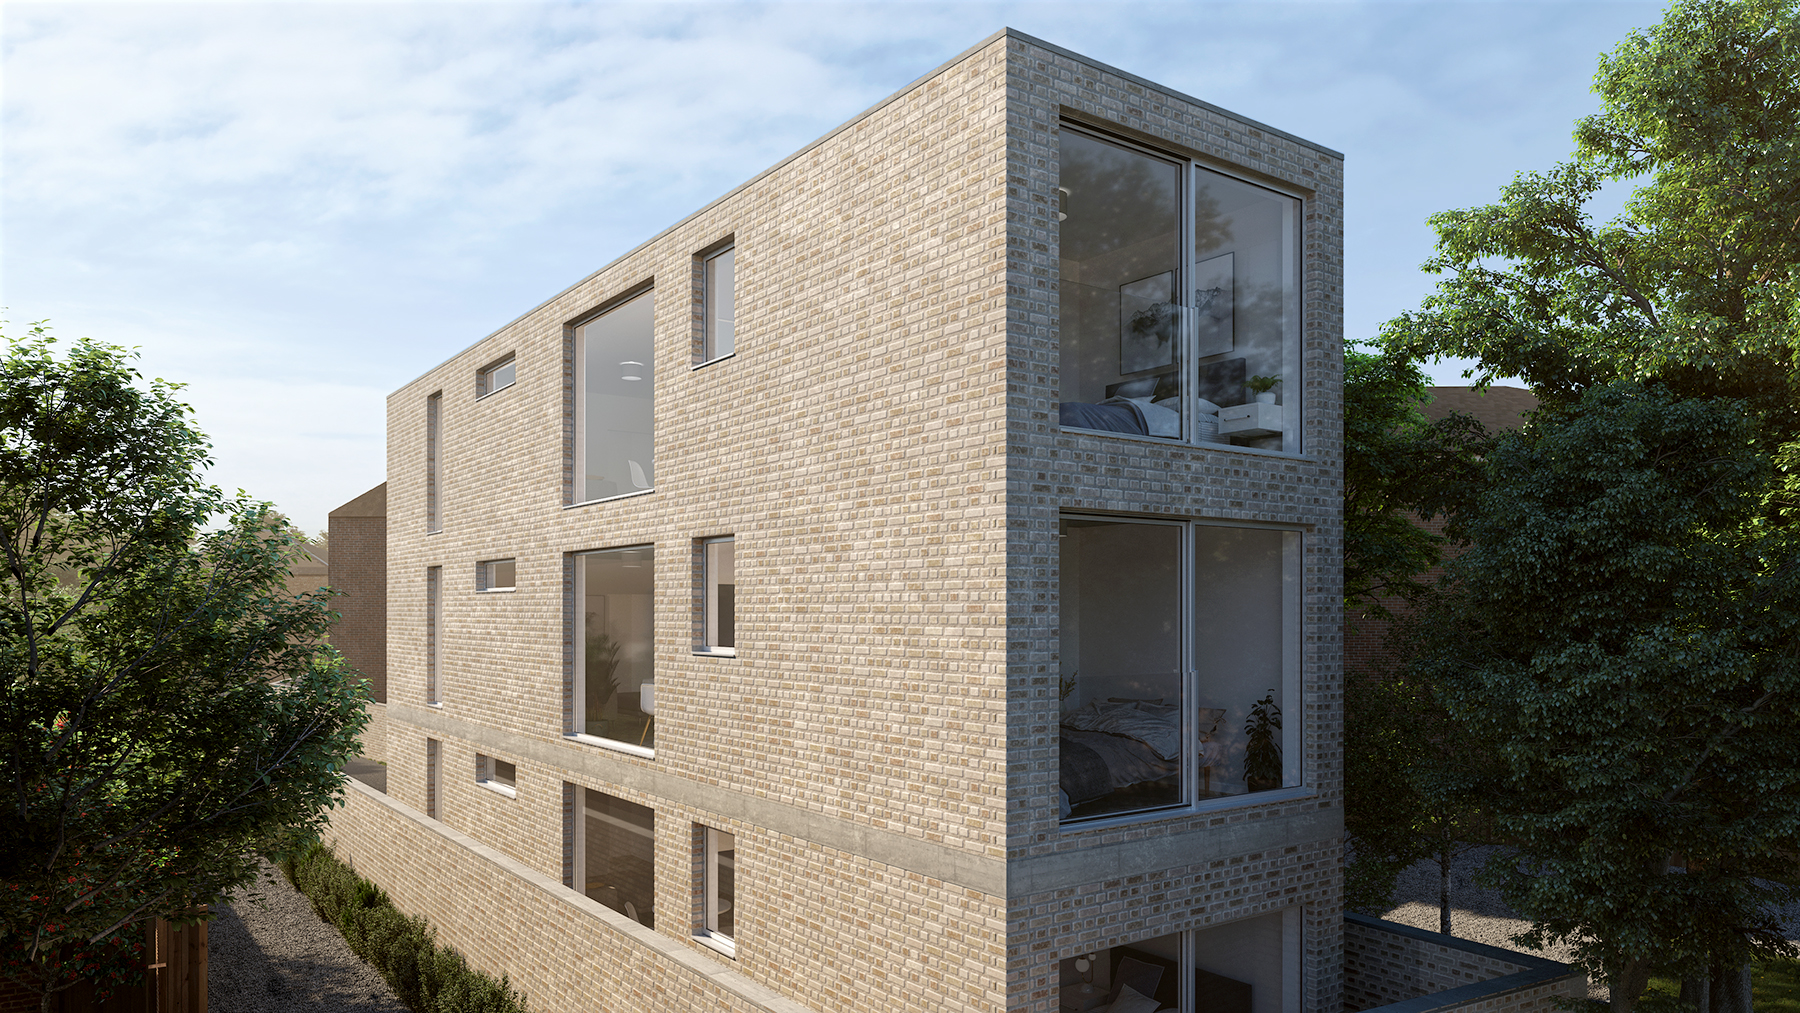 North Finchley New Build Apartments